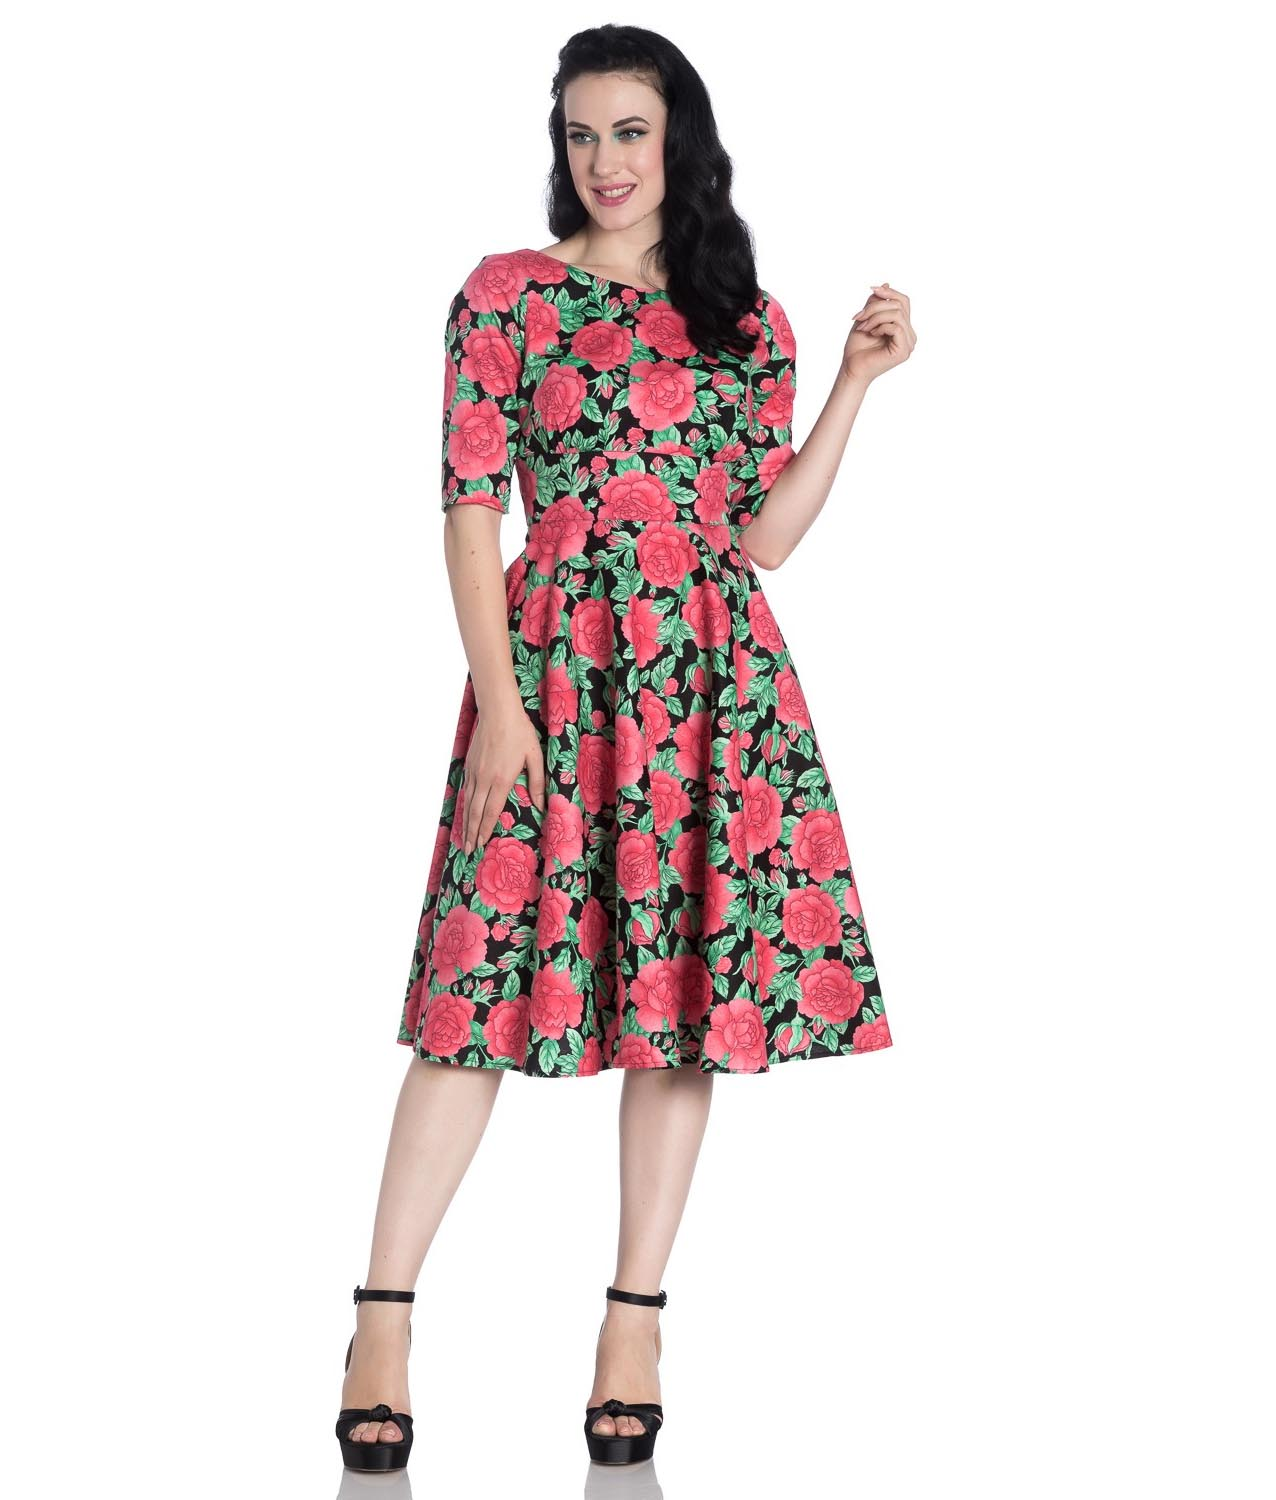 Hell-Bunny-40s-50s-Black-Pin-Up-Vintage-Dress-DARCY-Pink-Roses-All-Sizes thumbnail 19